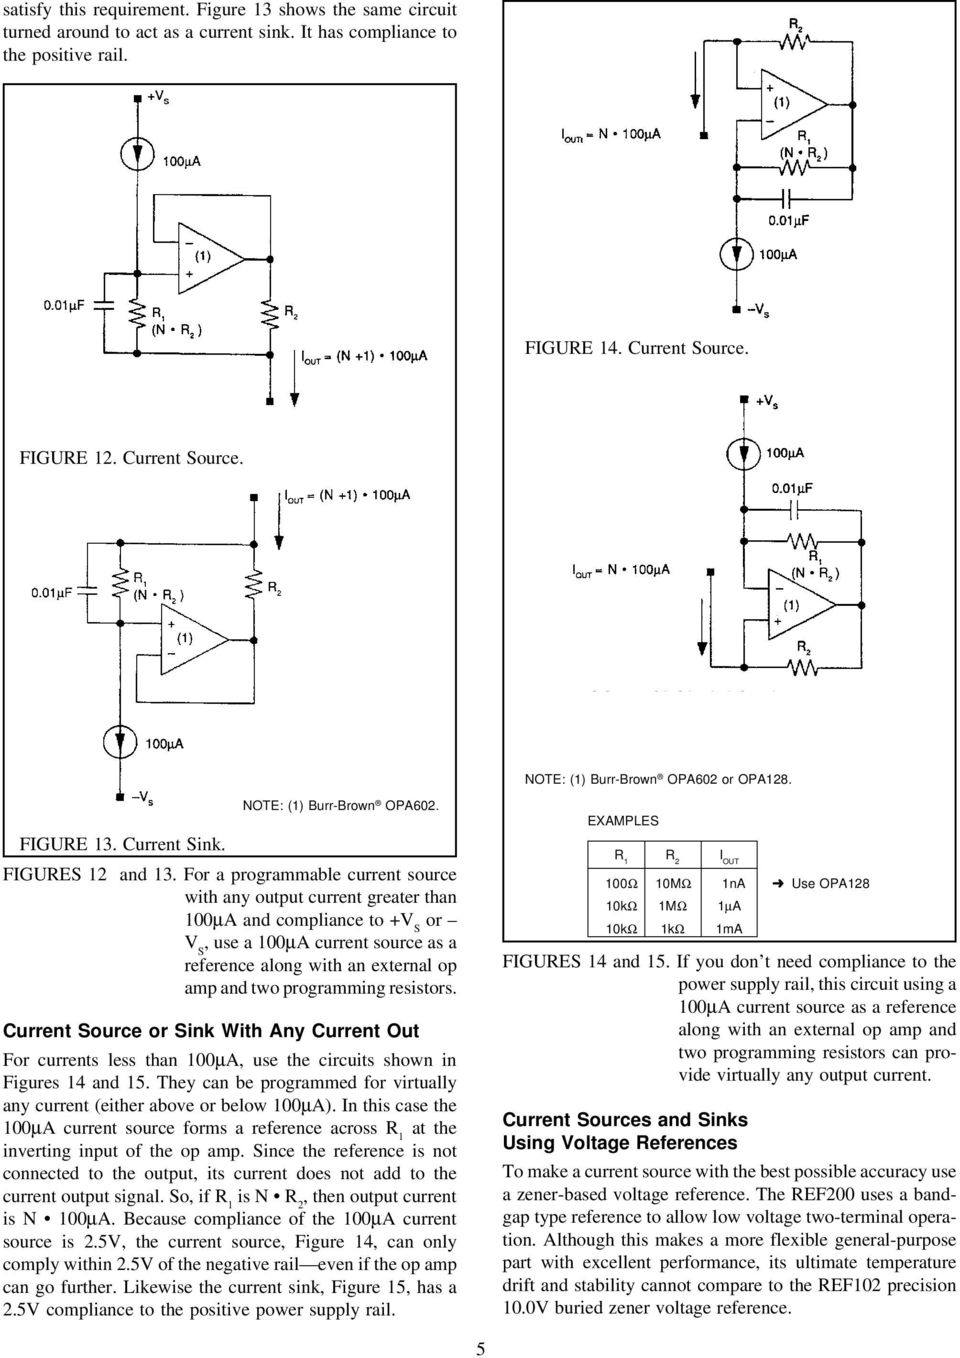 Design Of Fixed Current Sources Pdf Programmable Transimpedance Amplifier Circuit Schematic For A Source With Any Output Greater Than 100a And Compliance To